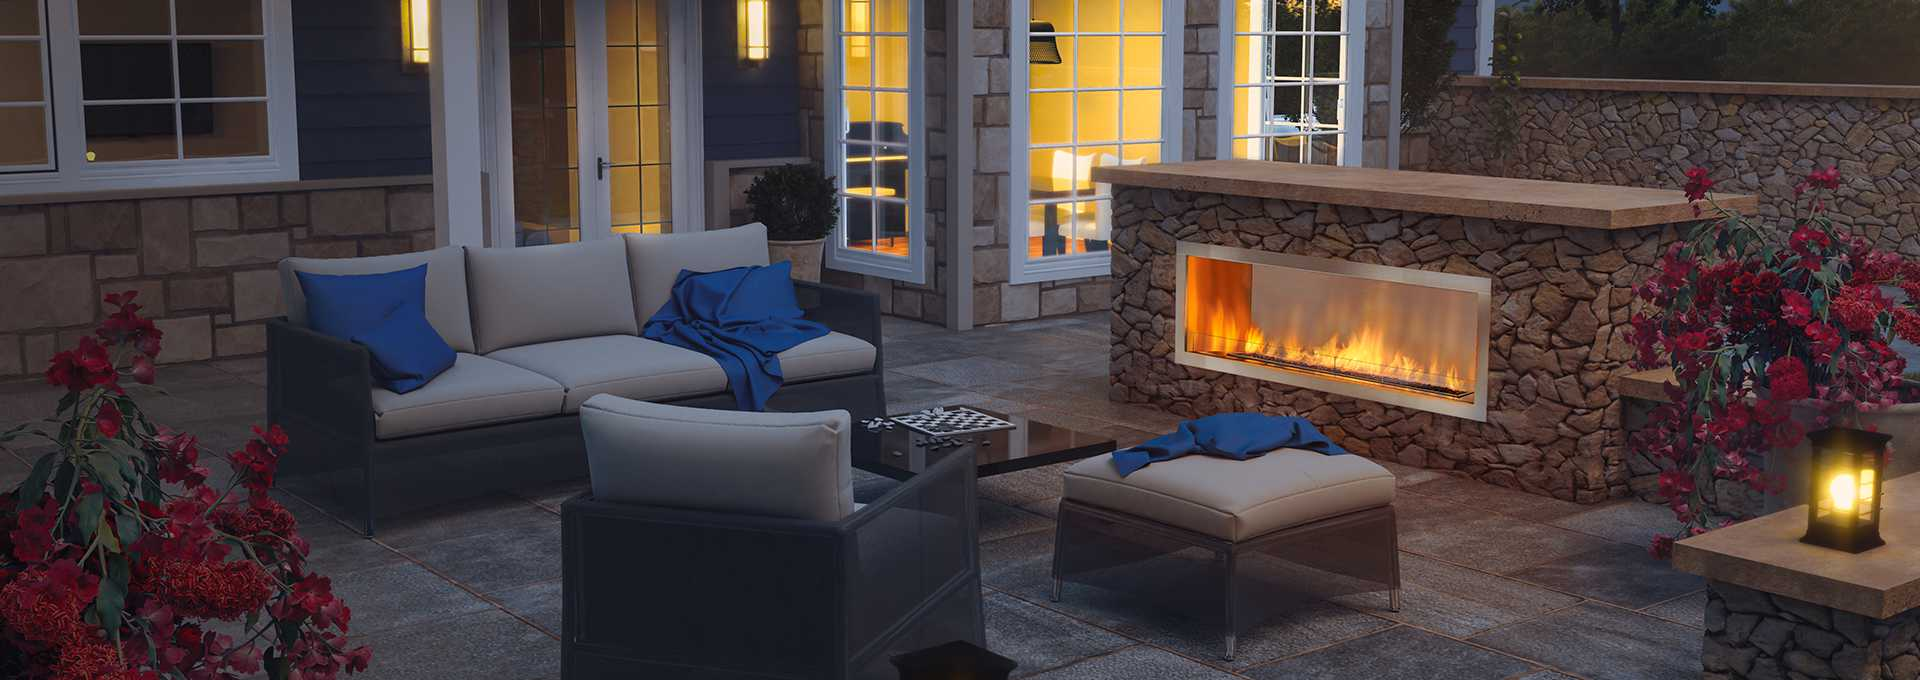 Outdoor Gas Fireplaces Regency Horizon Hzo60 Outdoor Gas Fireplace Welenco Stove Store